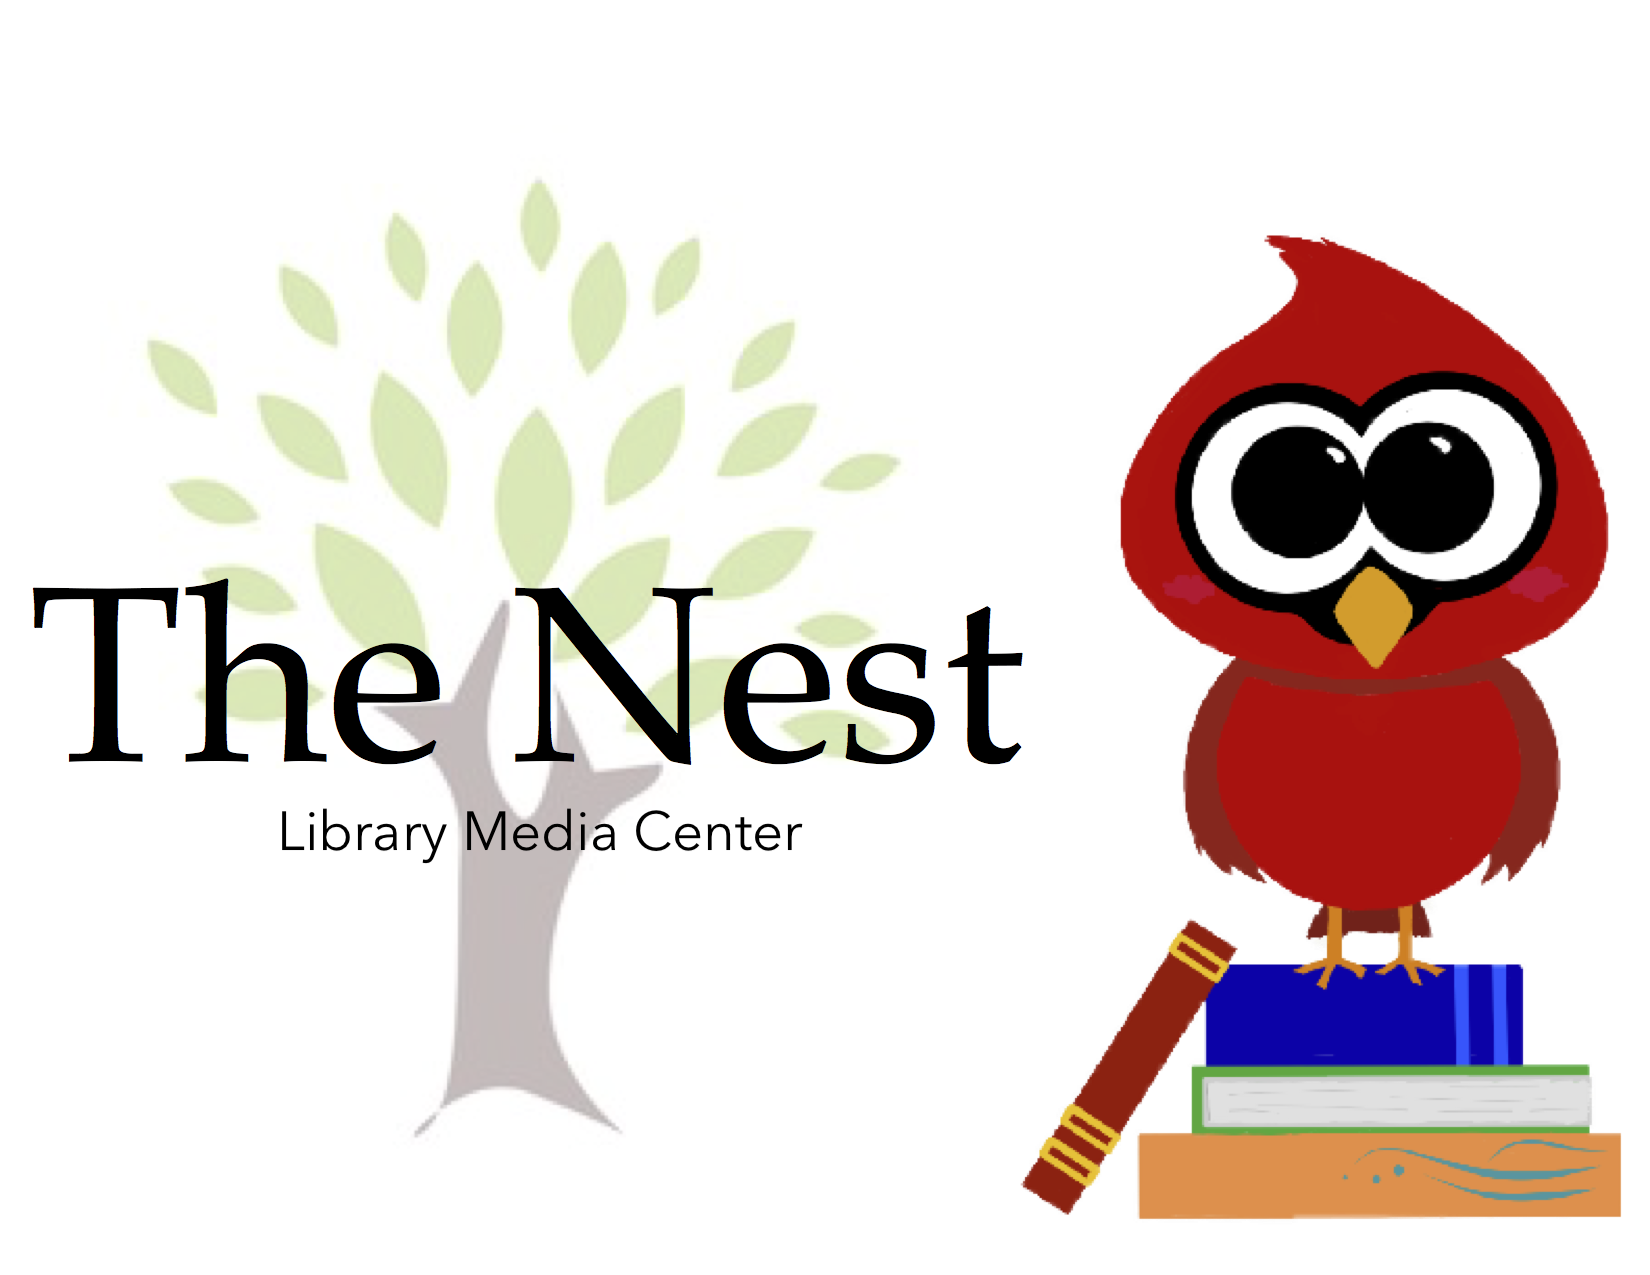 The Nest Library/Media Center logo contains a small tree as background for the letters. Next to them there's a small red bird perched on top of a pile of three books.